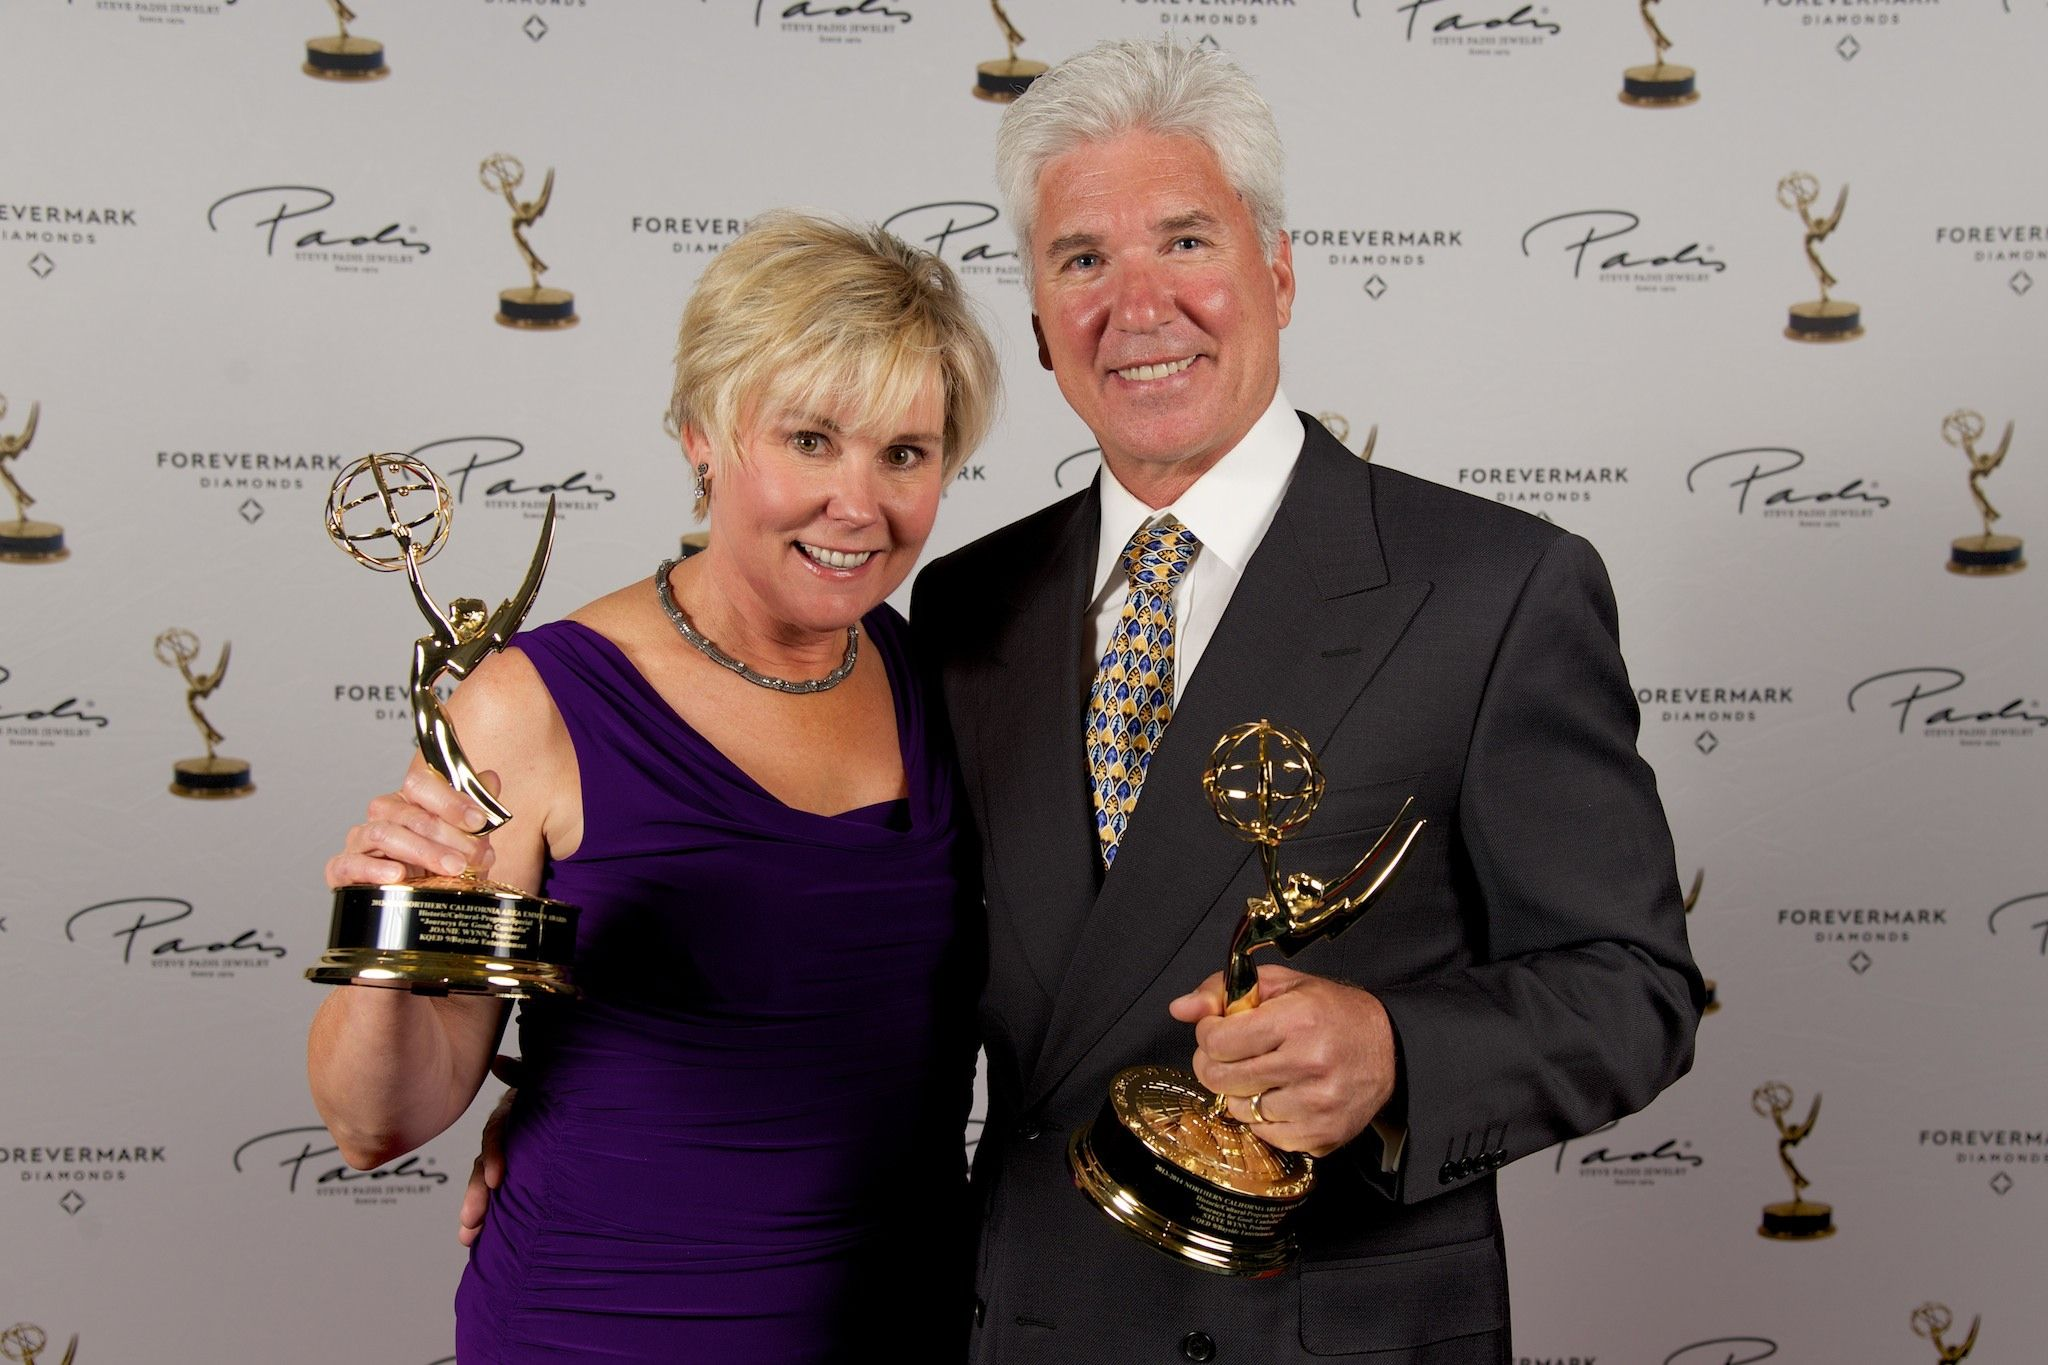 Steve and Joanie Wynn win multiple Emmy awards